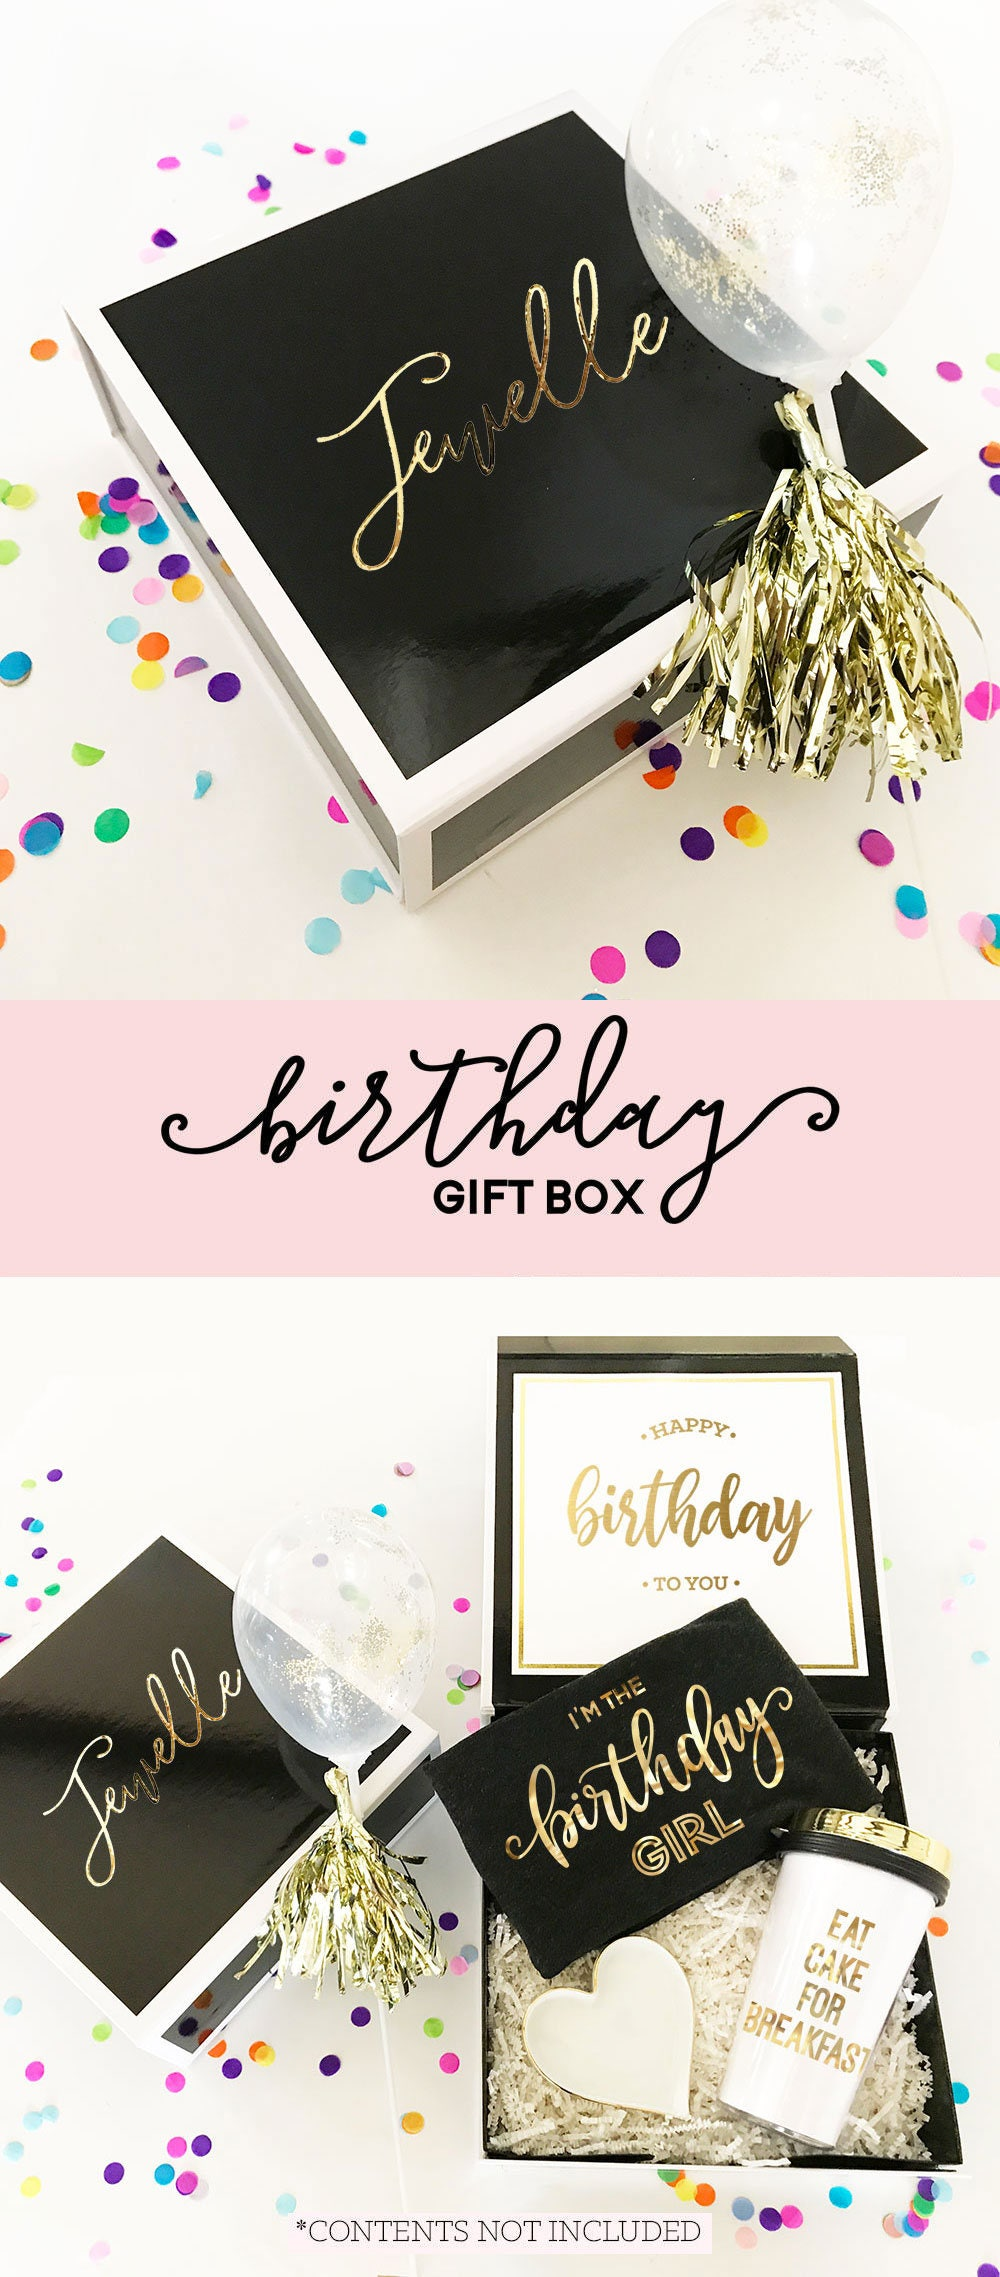 Birthday Gift Box Basket Ideas Personalized